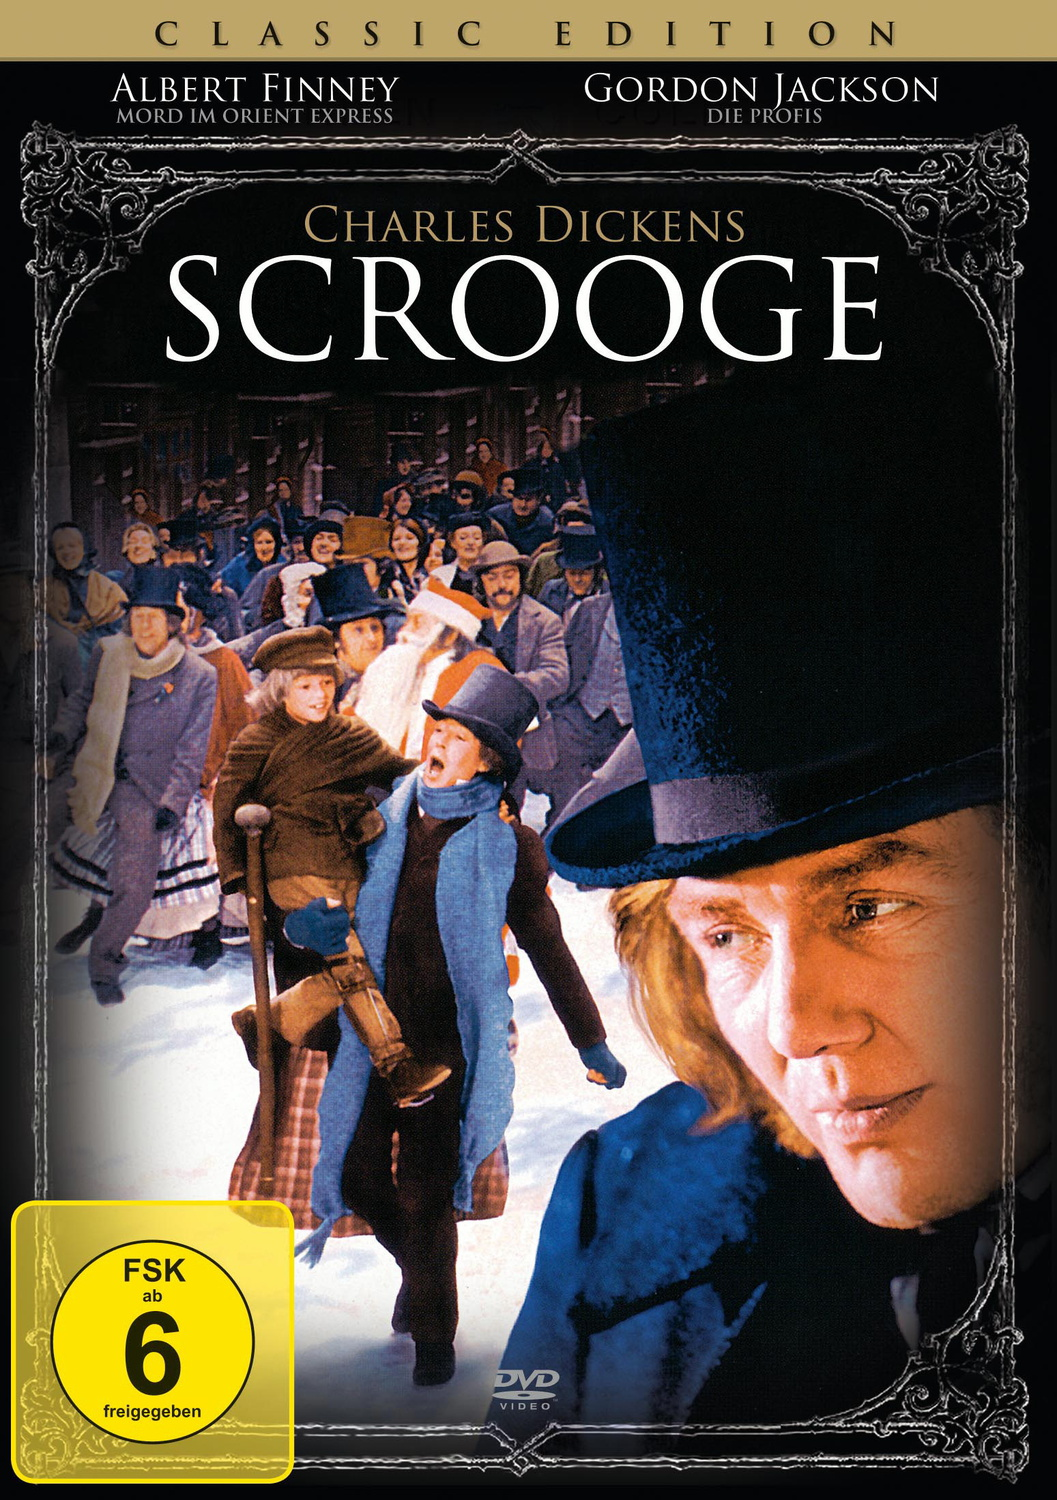 Charles Dickens - Scrooge [Classic Edition]